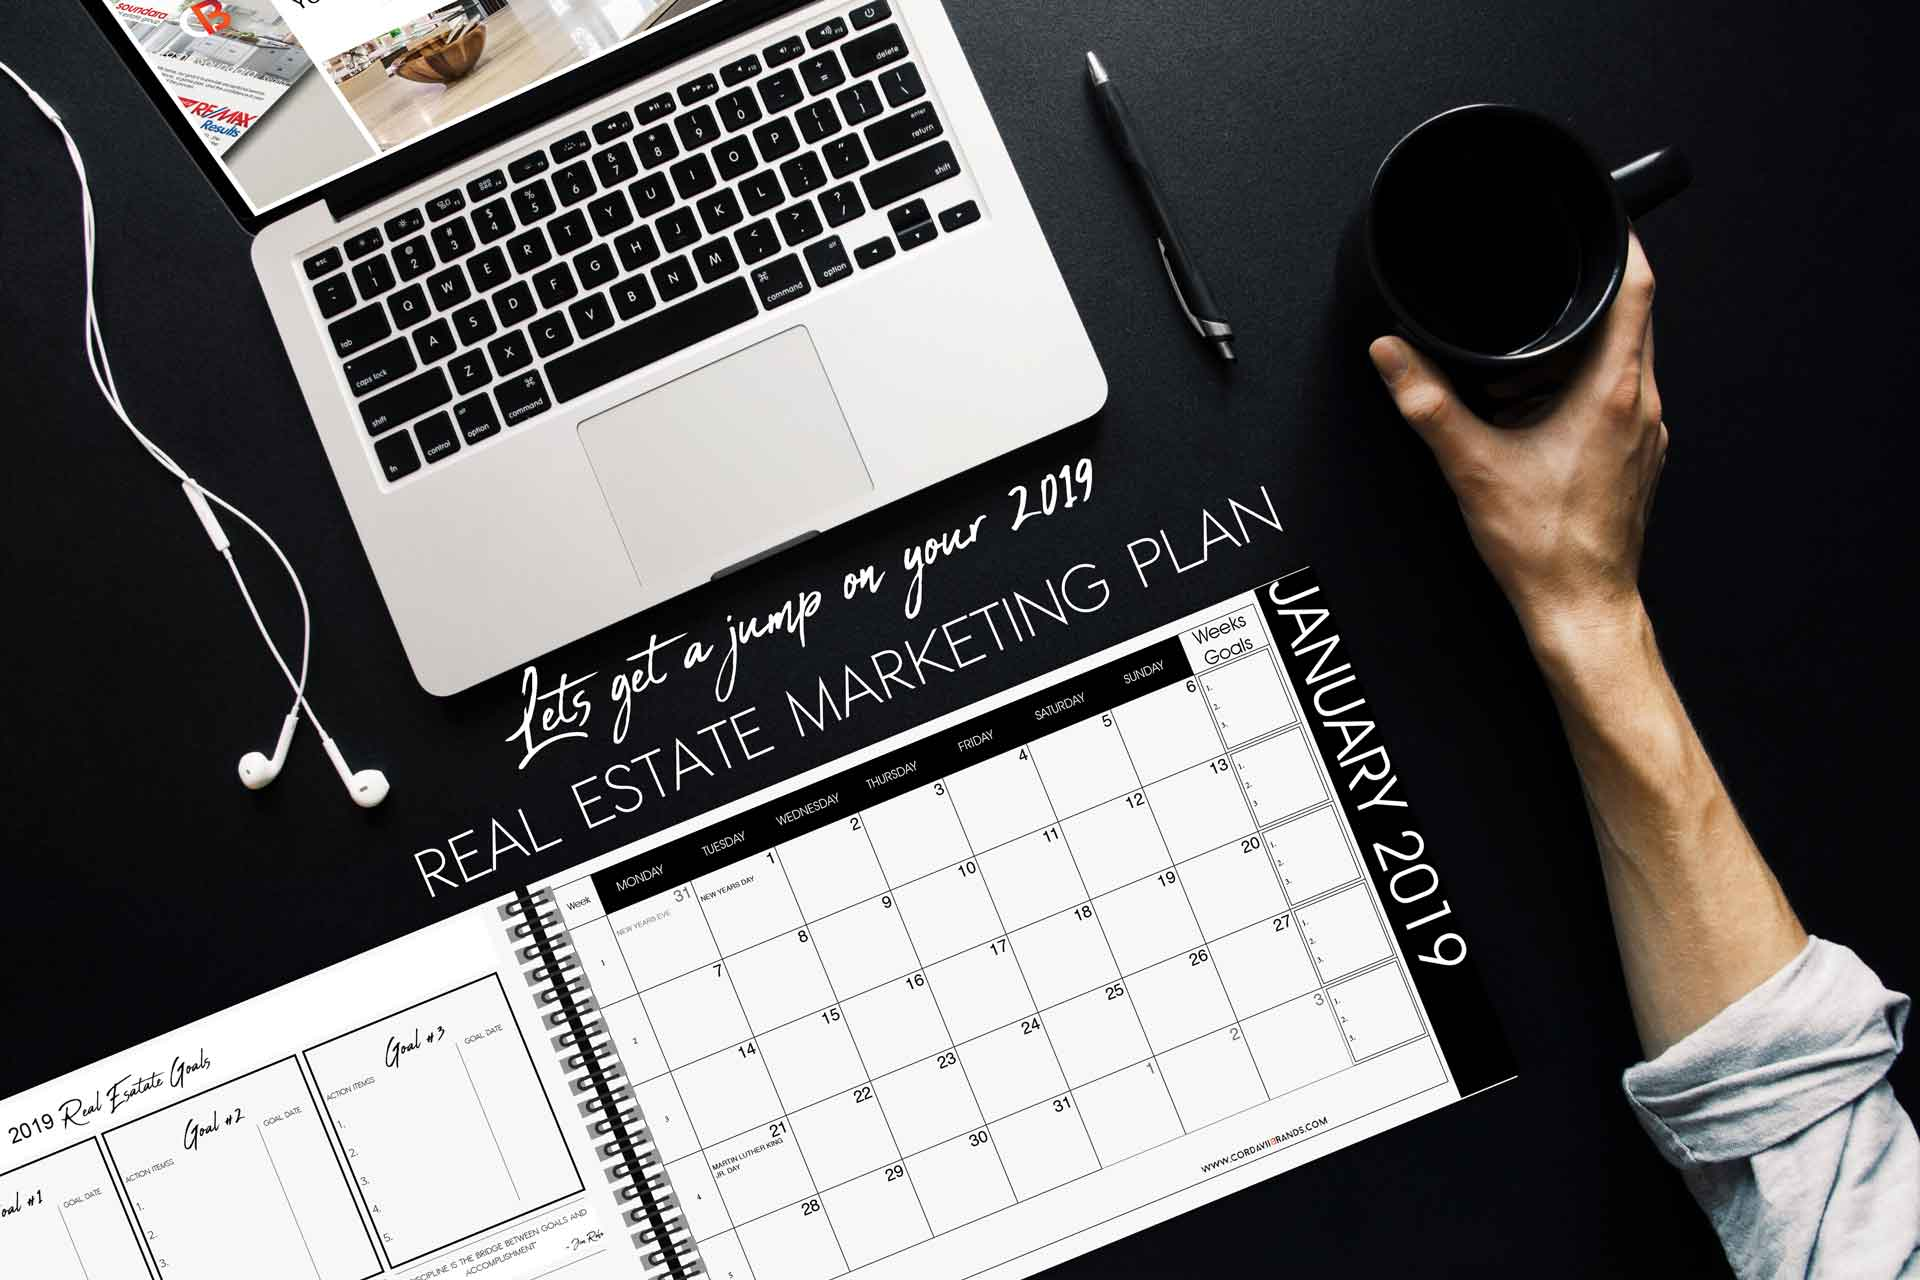 Cordavii Brand Consulting Real Estate Marketing Calendar - Lets get a jump on you 2019 real estate marketing plan.